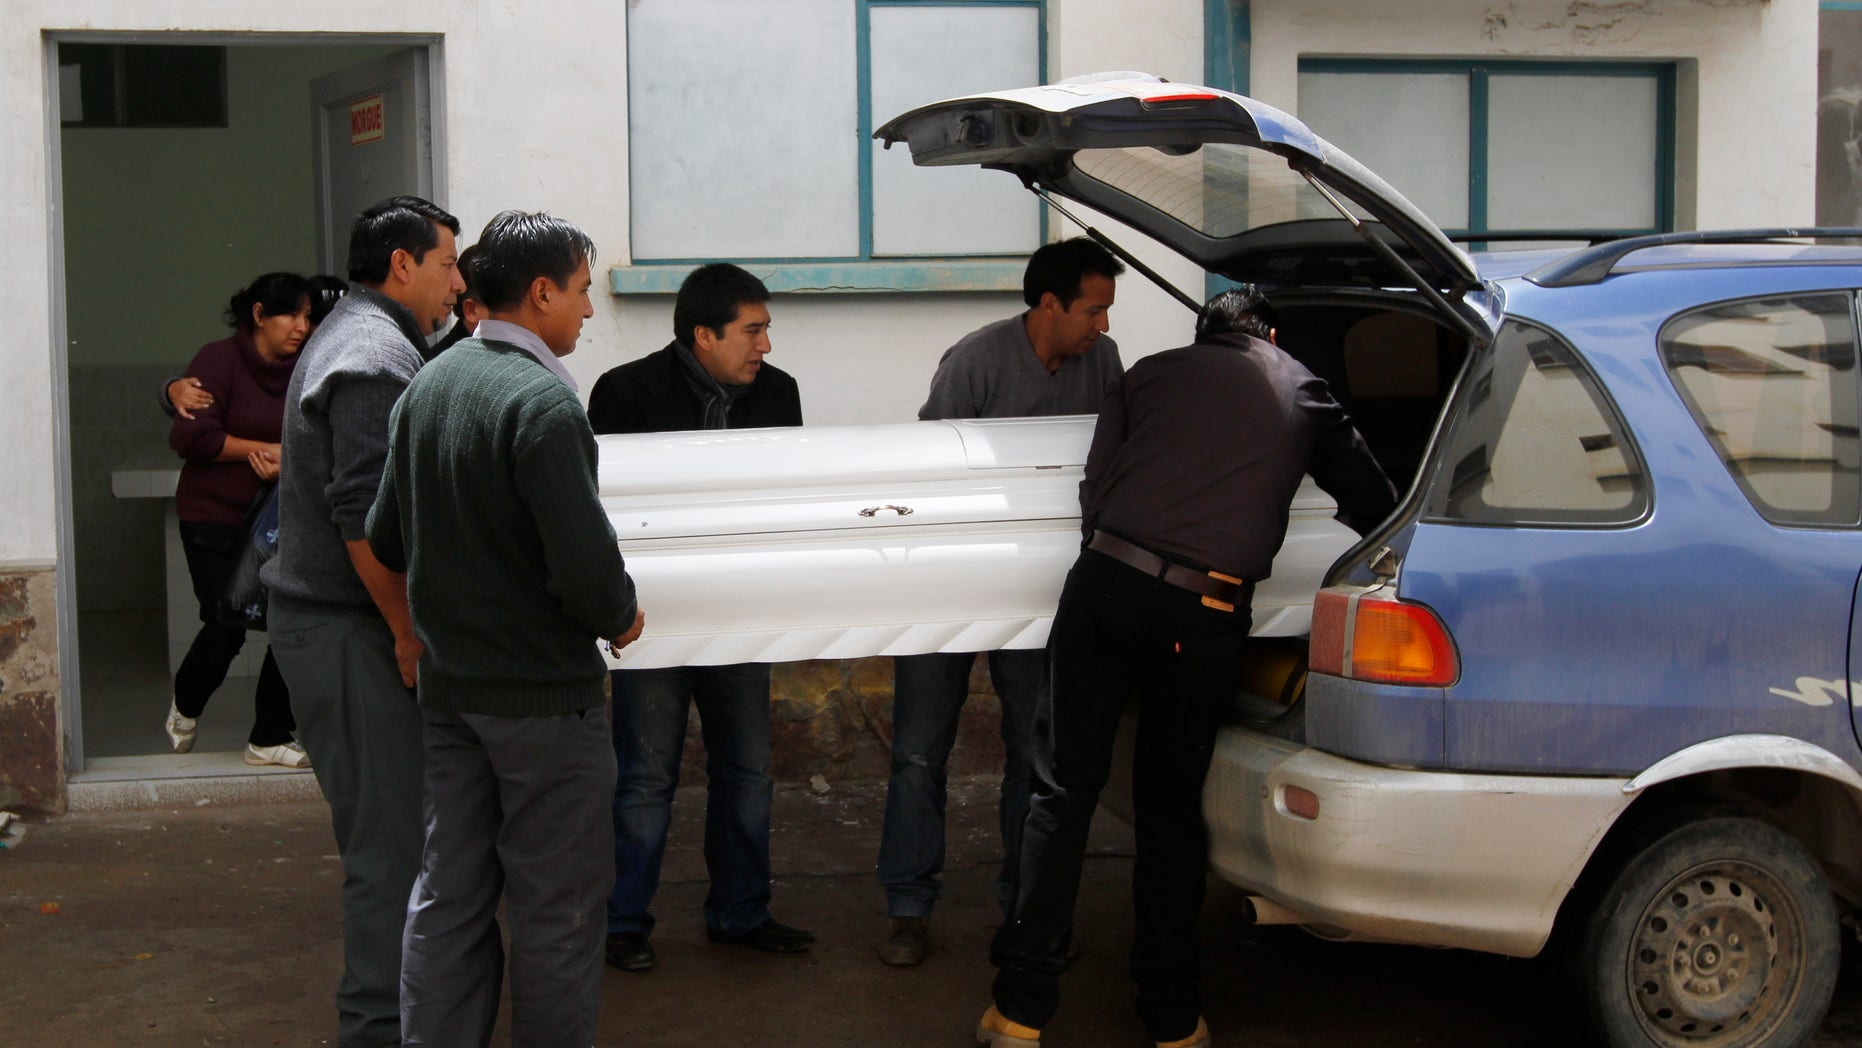 Relatives place the coffin containing the remains of Kevin Beltran Estrada, who died after an explosive went off during a soccer game, into a car in Oruro, Bolivia, Thursday, Feb. 21, 2013.  Twelve Corinthian soccer fans were arrested on suspicion of having caused the death of a 14-year-old San Jose soccer fan by launching an explosive device during a Copa Libertadores game between San Jose and Corinthians on Wednesday in the Bolivian city of Oruro, according to police. (AP Photo/Juan Karita)